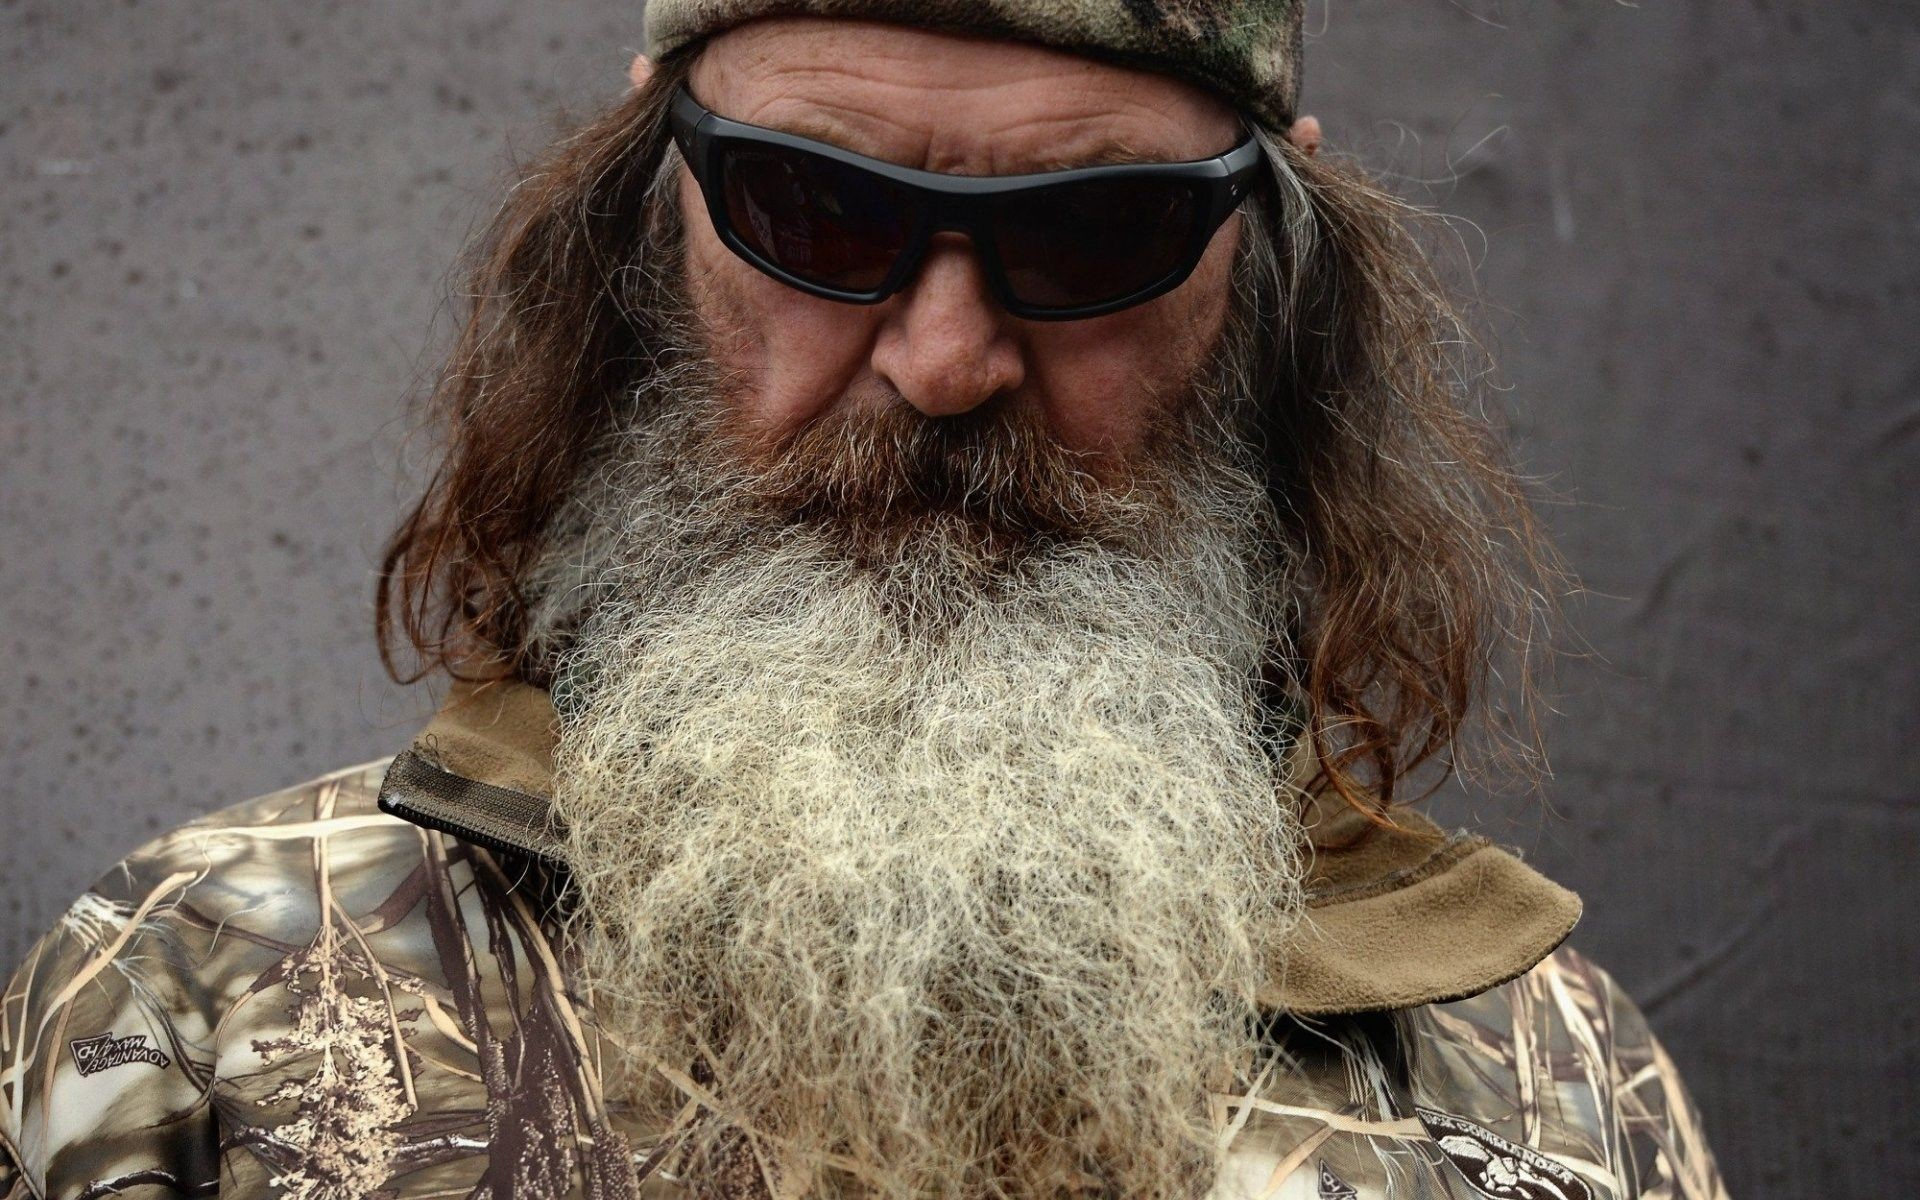 Res: 1920x1200, 2017-03-04 - Amazing duck dynasty pic - #1939385